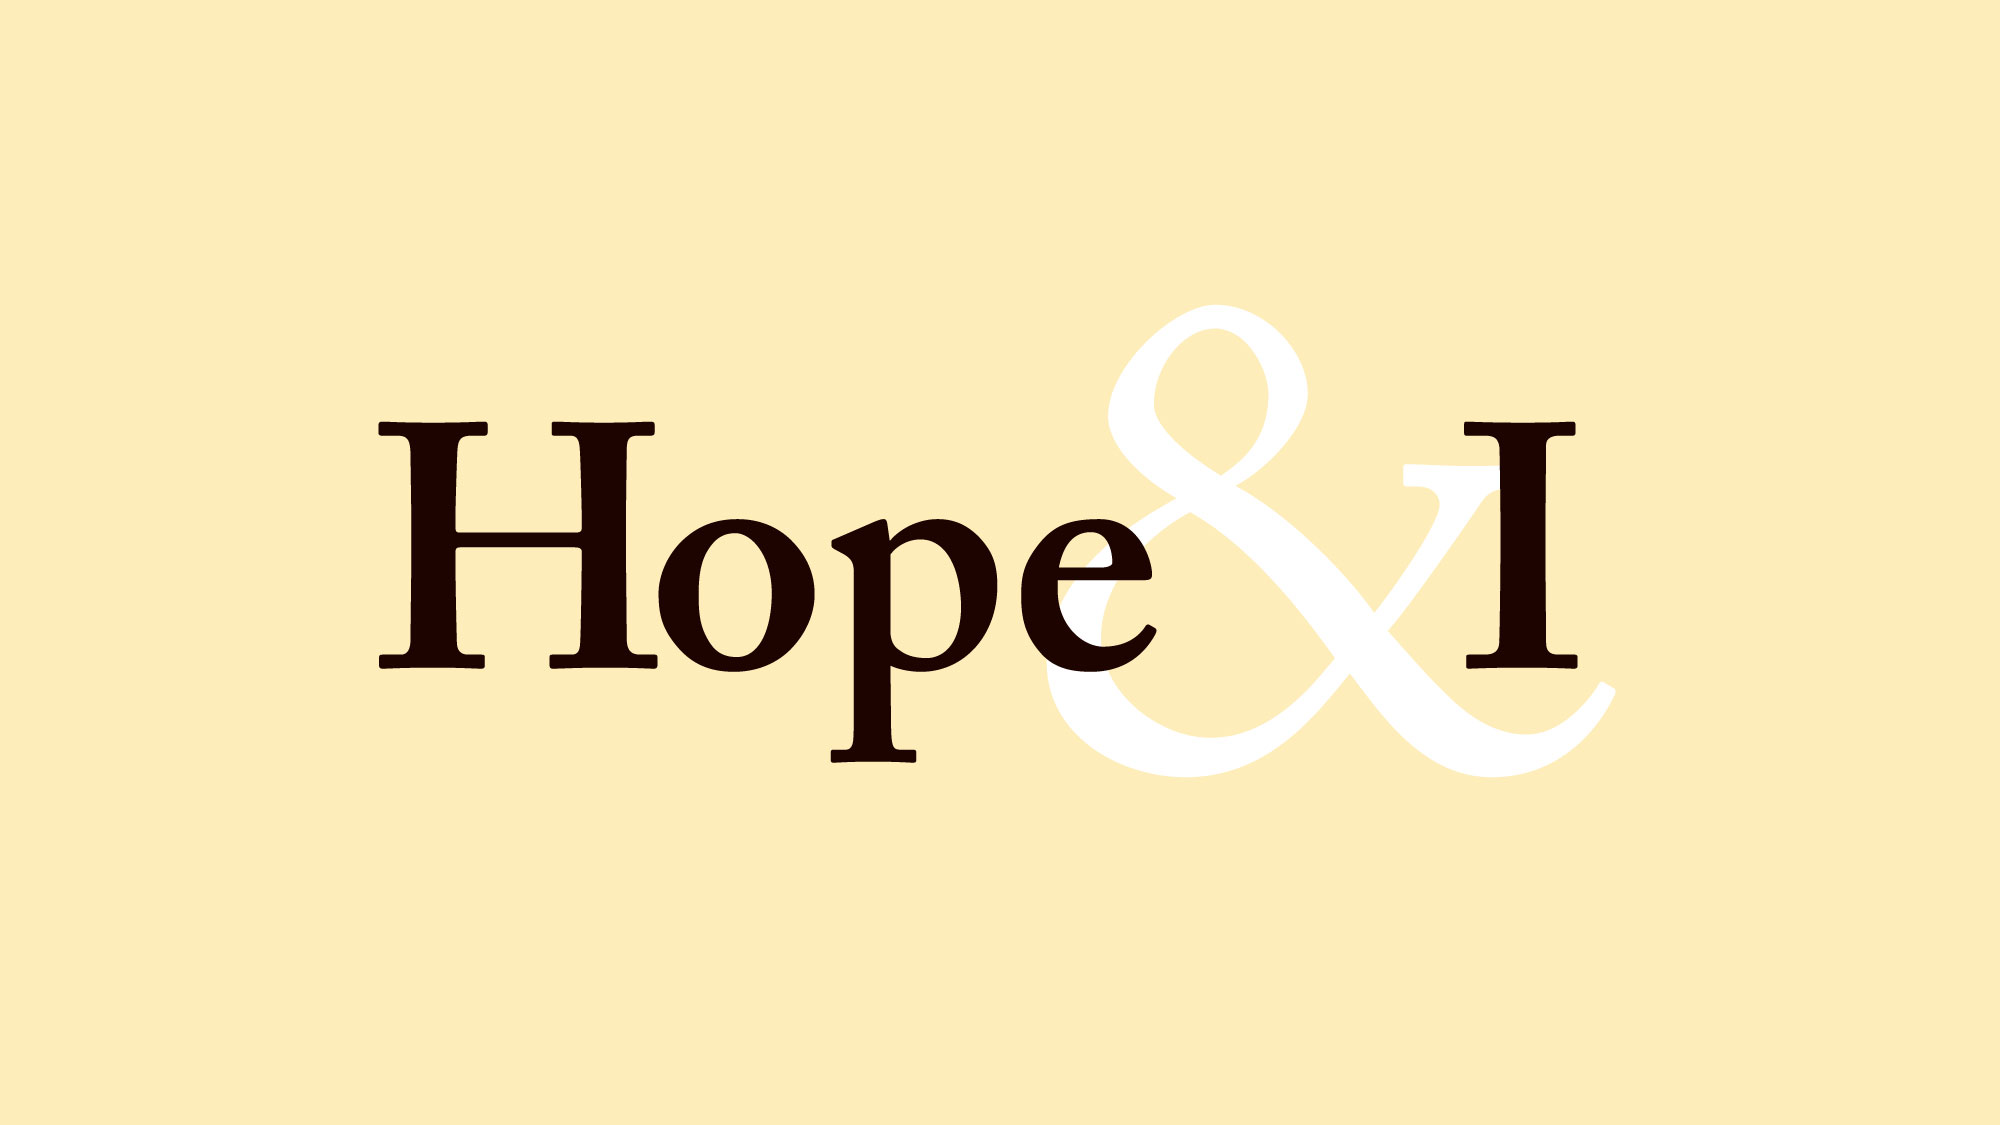 Copy of Hope & I